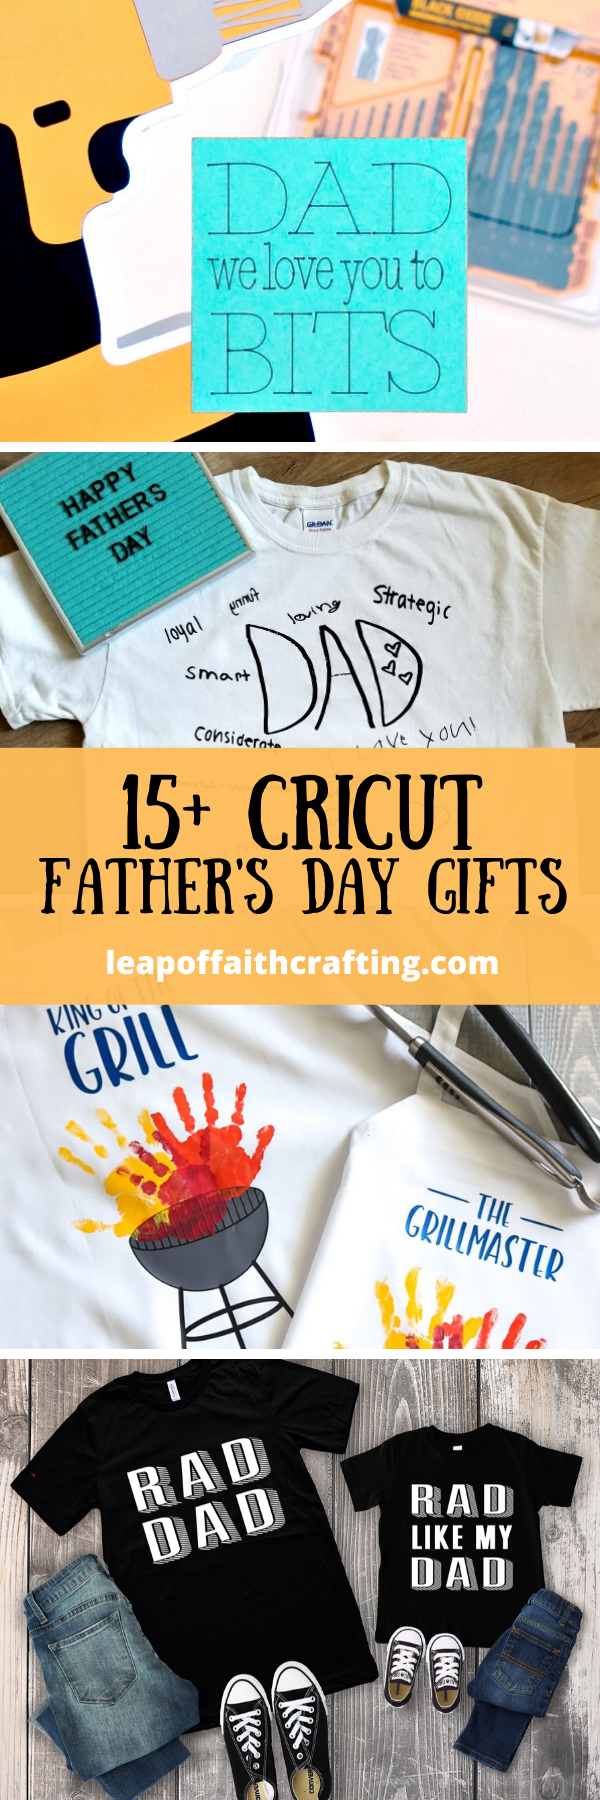 cricut fathers day ideas pinterest